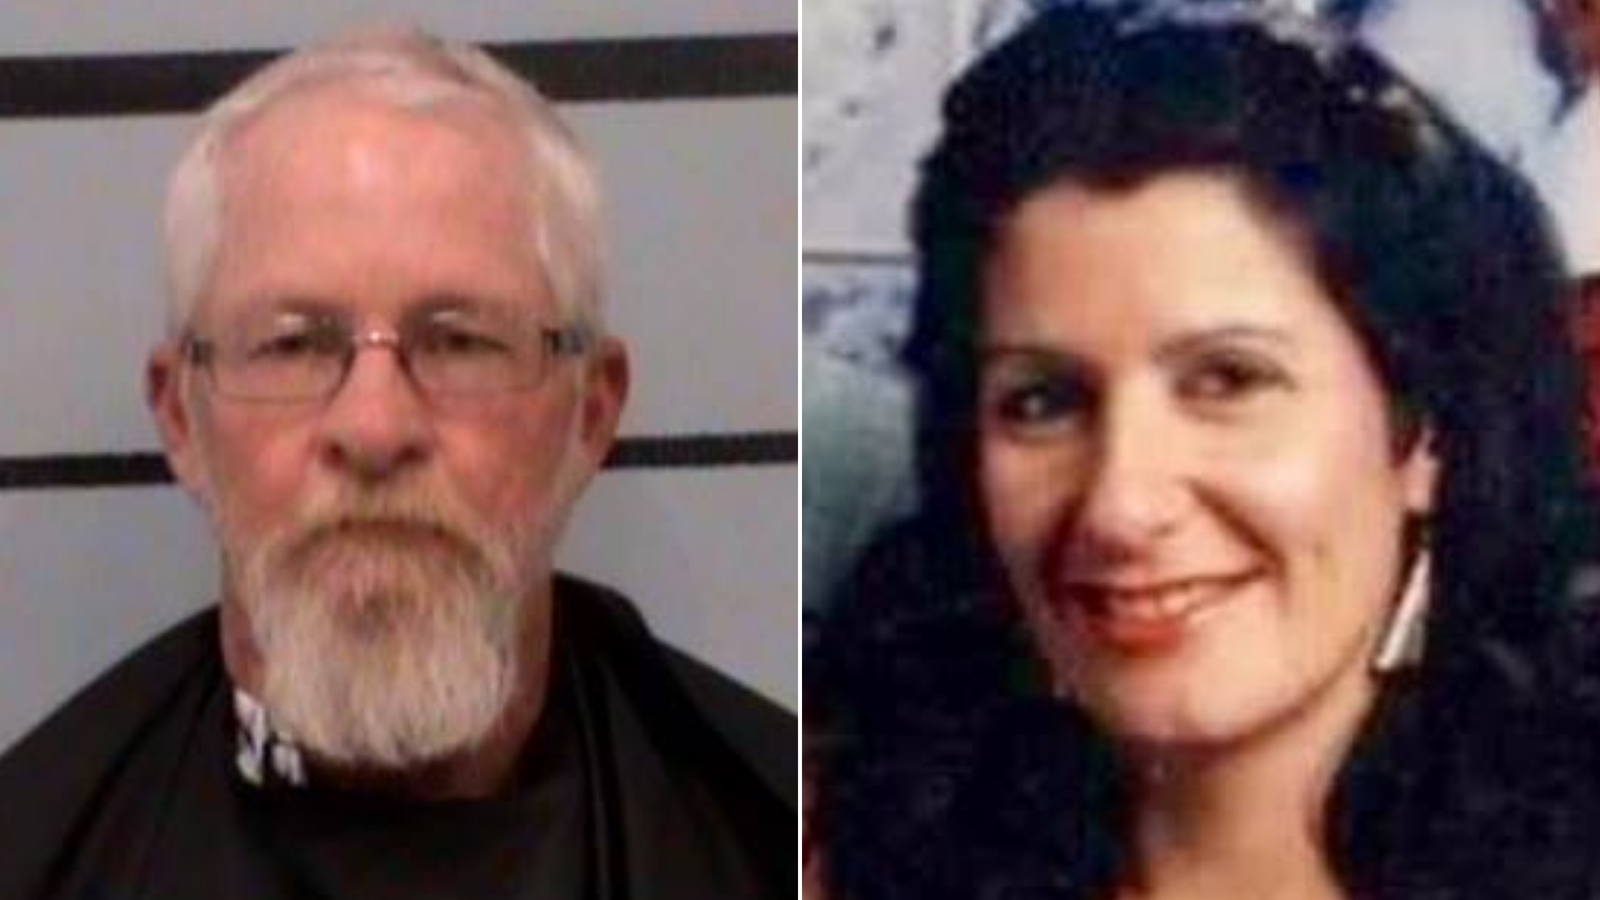 Texas landlord indicted for the murder of a tenant in 14-year cold case